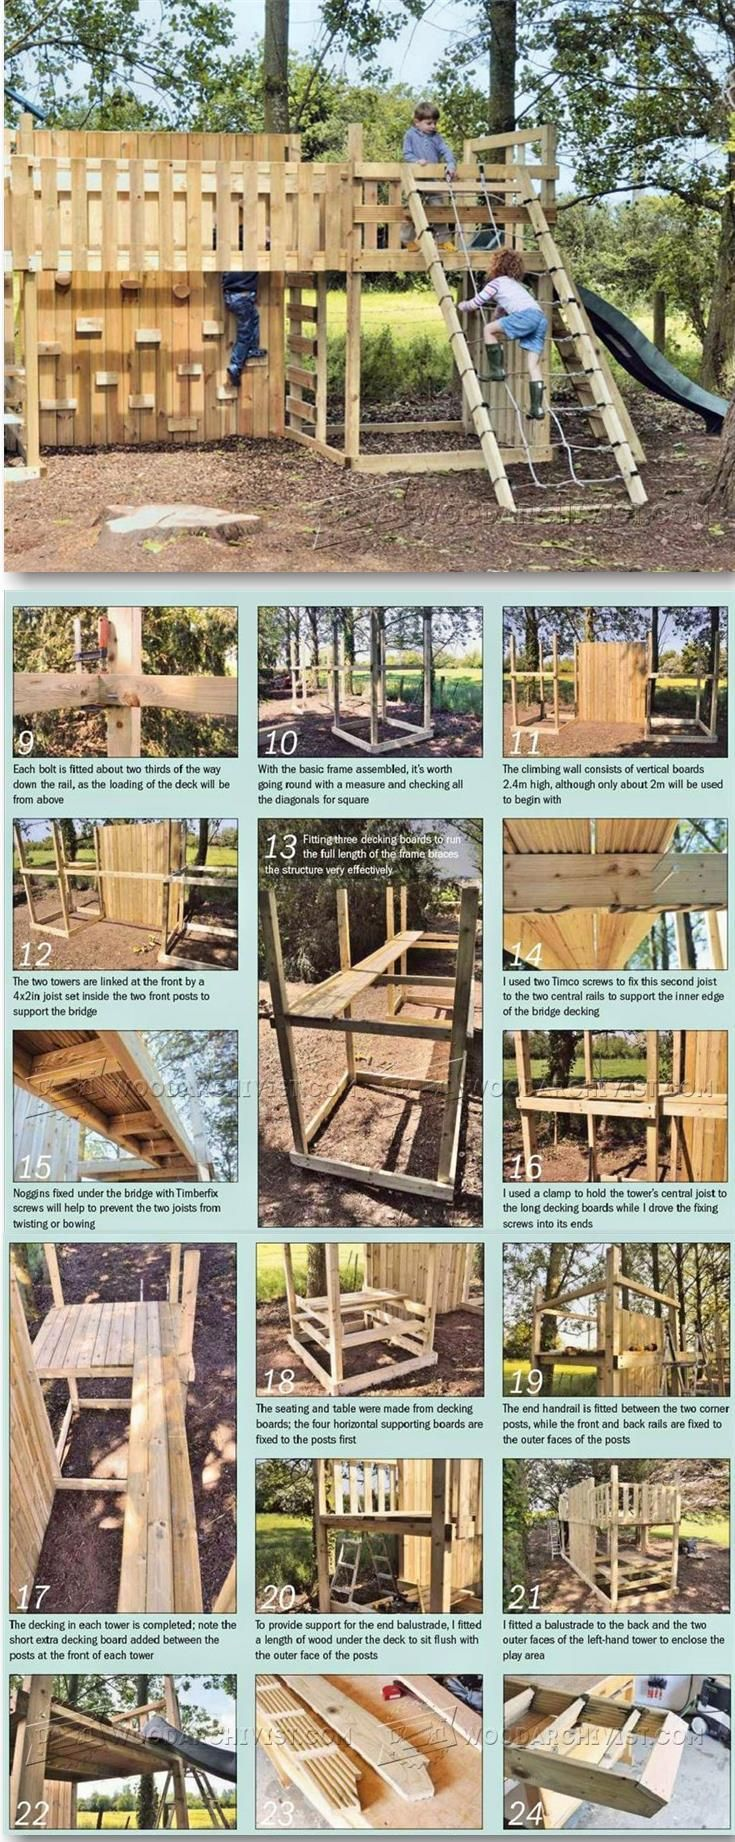 Kids Climbing Frame Plans - Children's Outdoor Plans and Projects | WoodArchivist.com